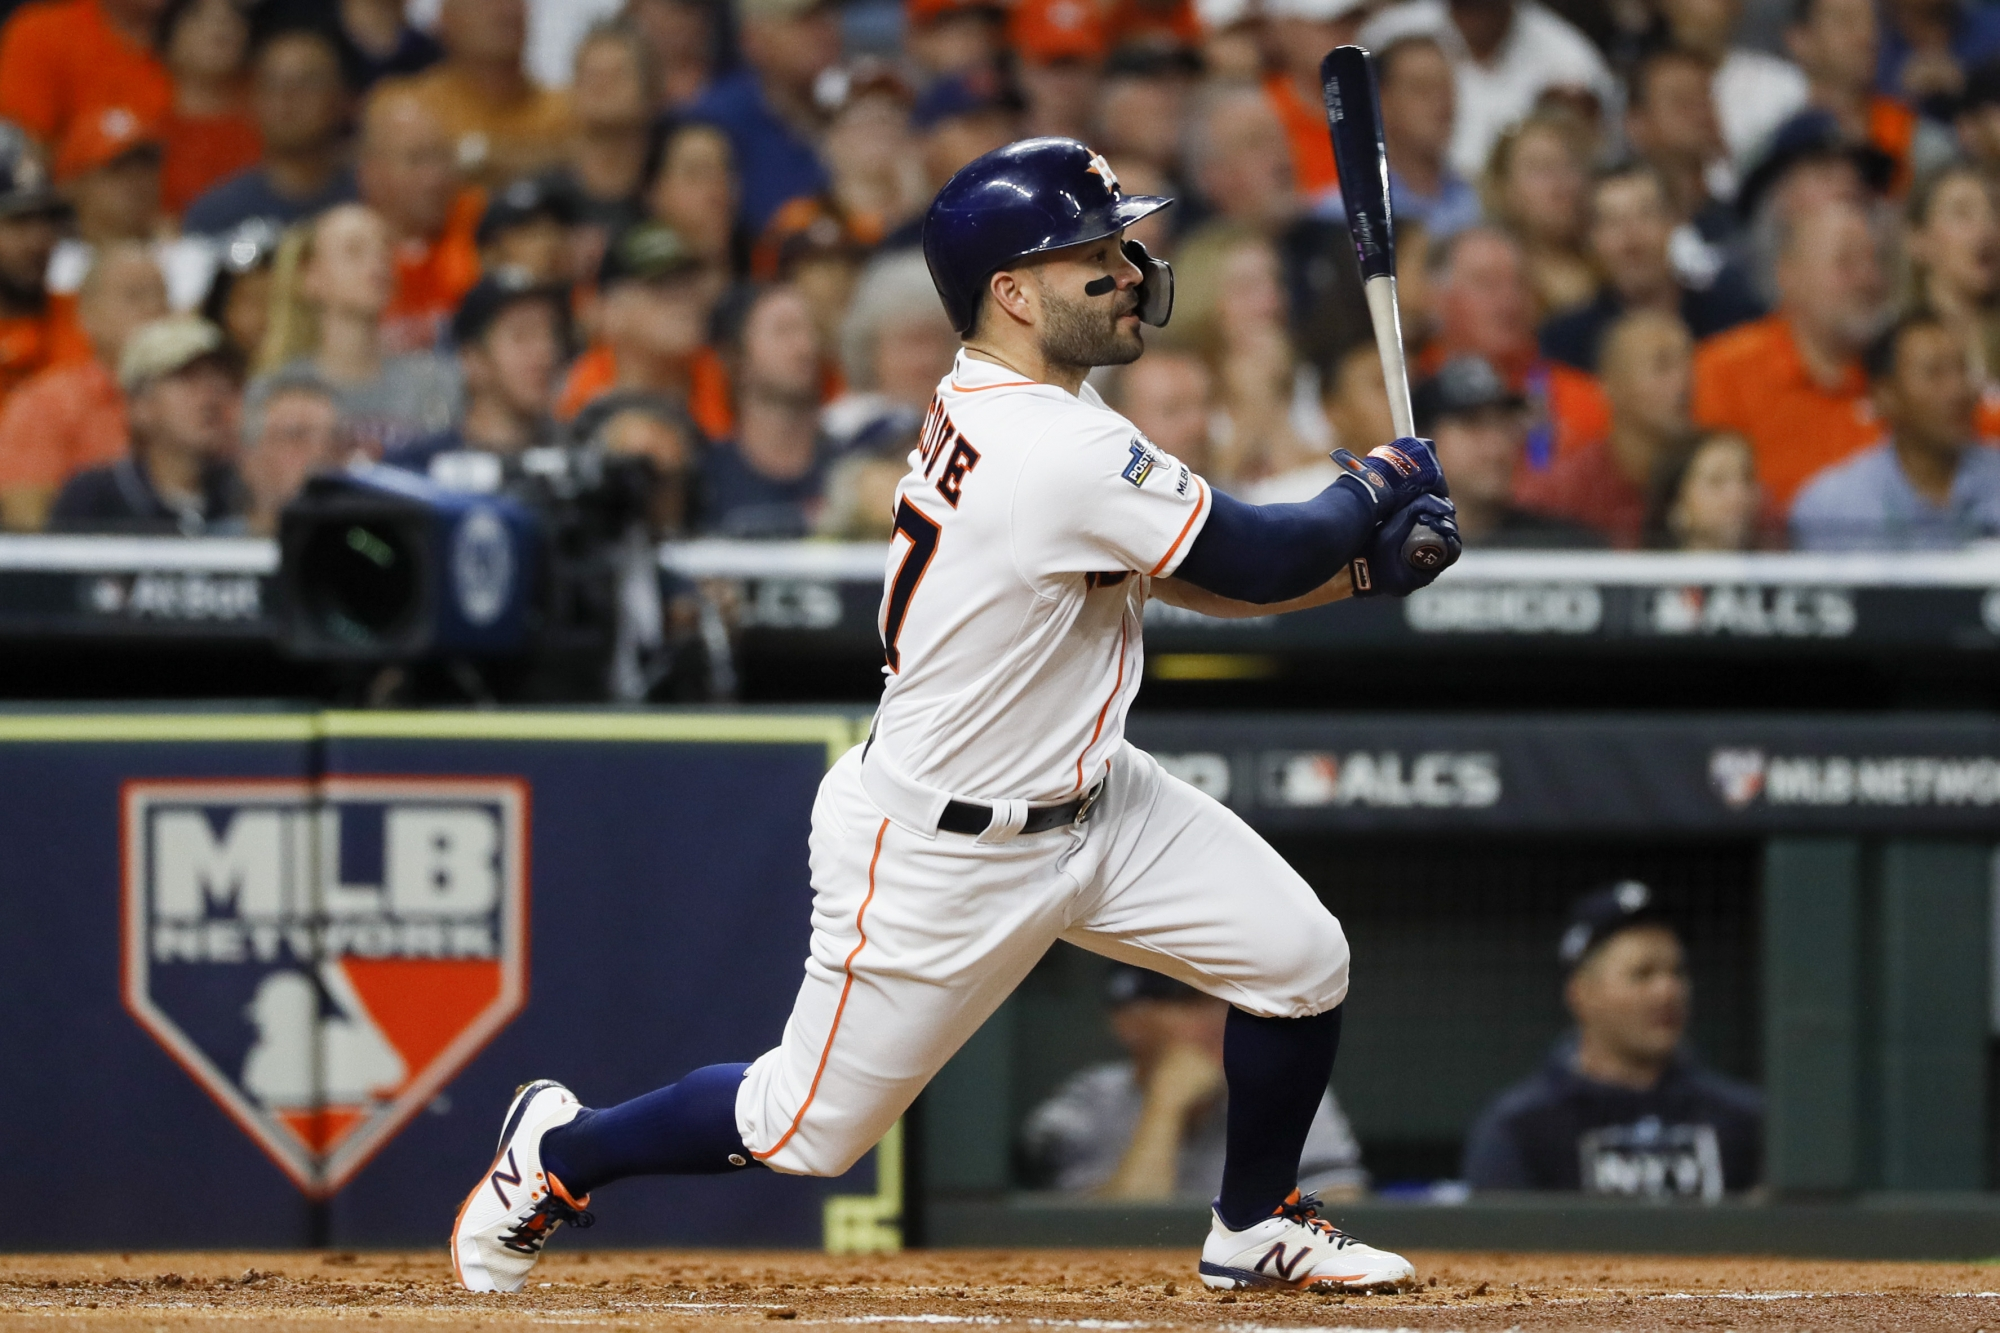 Altuves HR in 9th sends Astros to World Series over Yankees